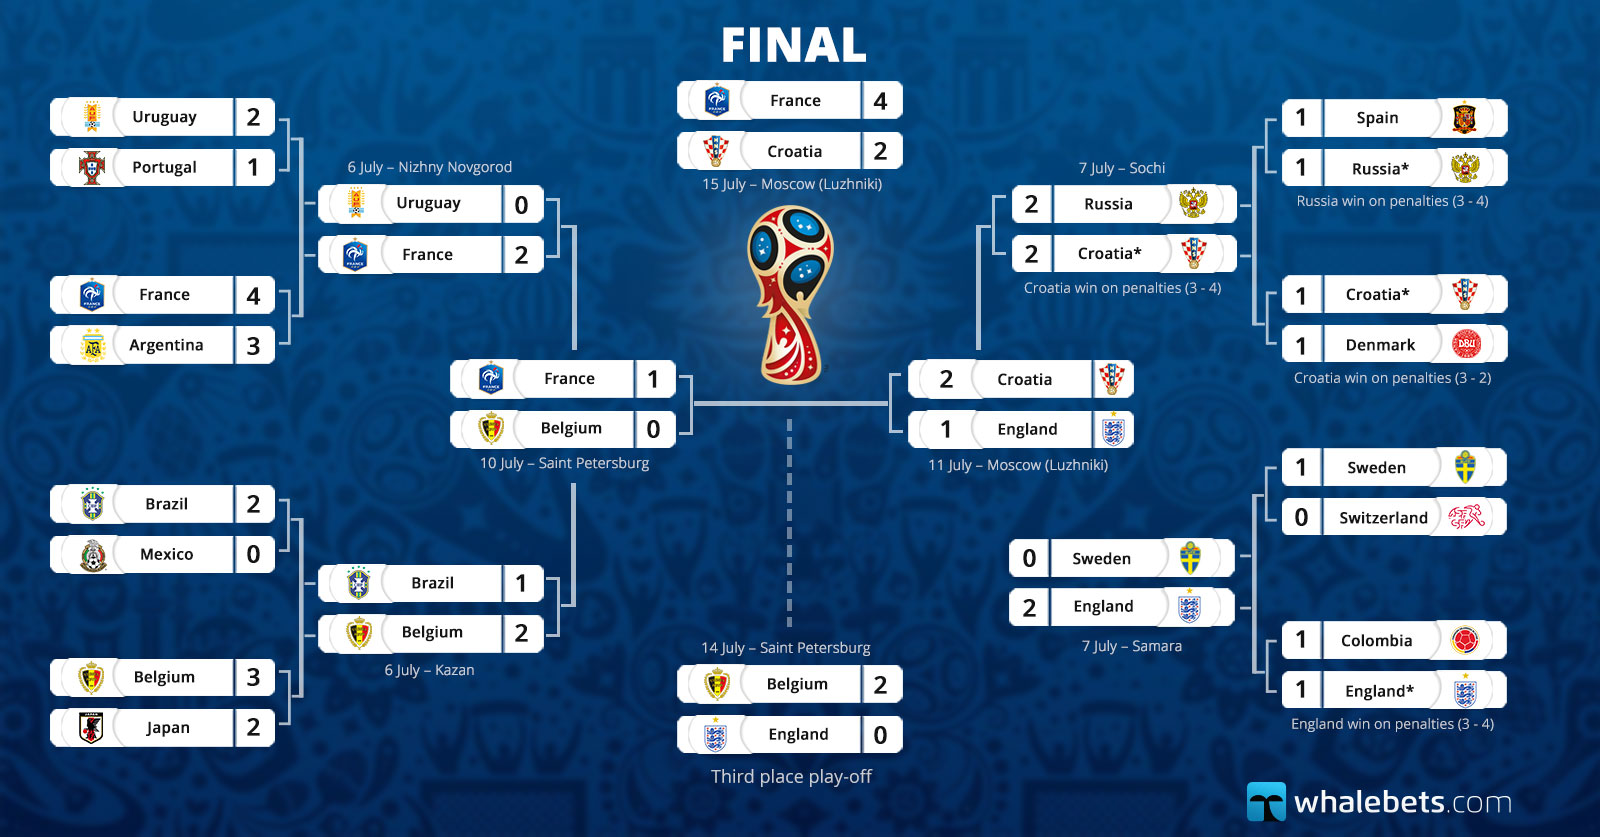 2018 Fifa World Cup Russia - Wallchart - 16 July